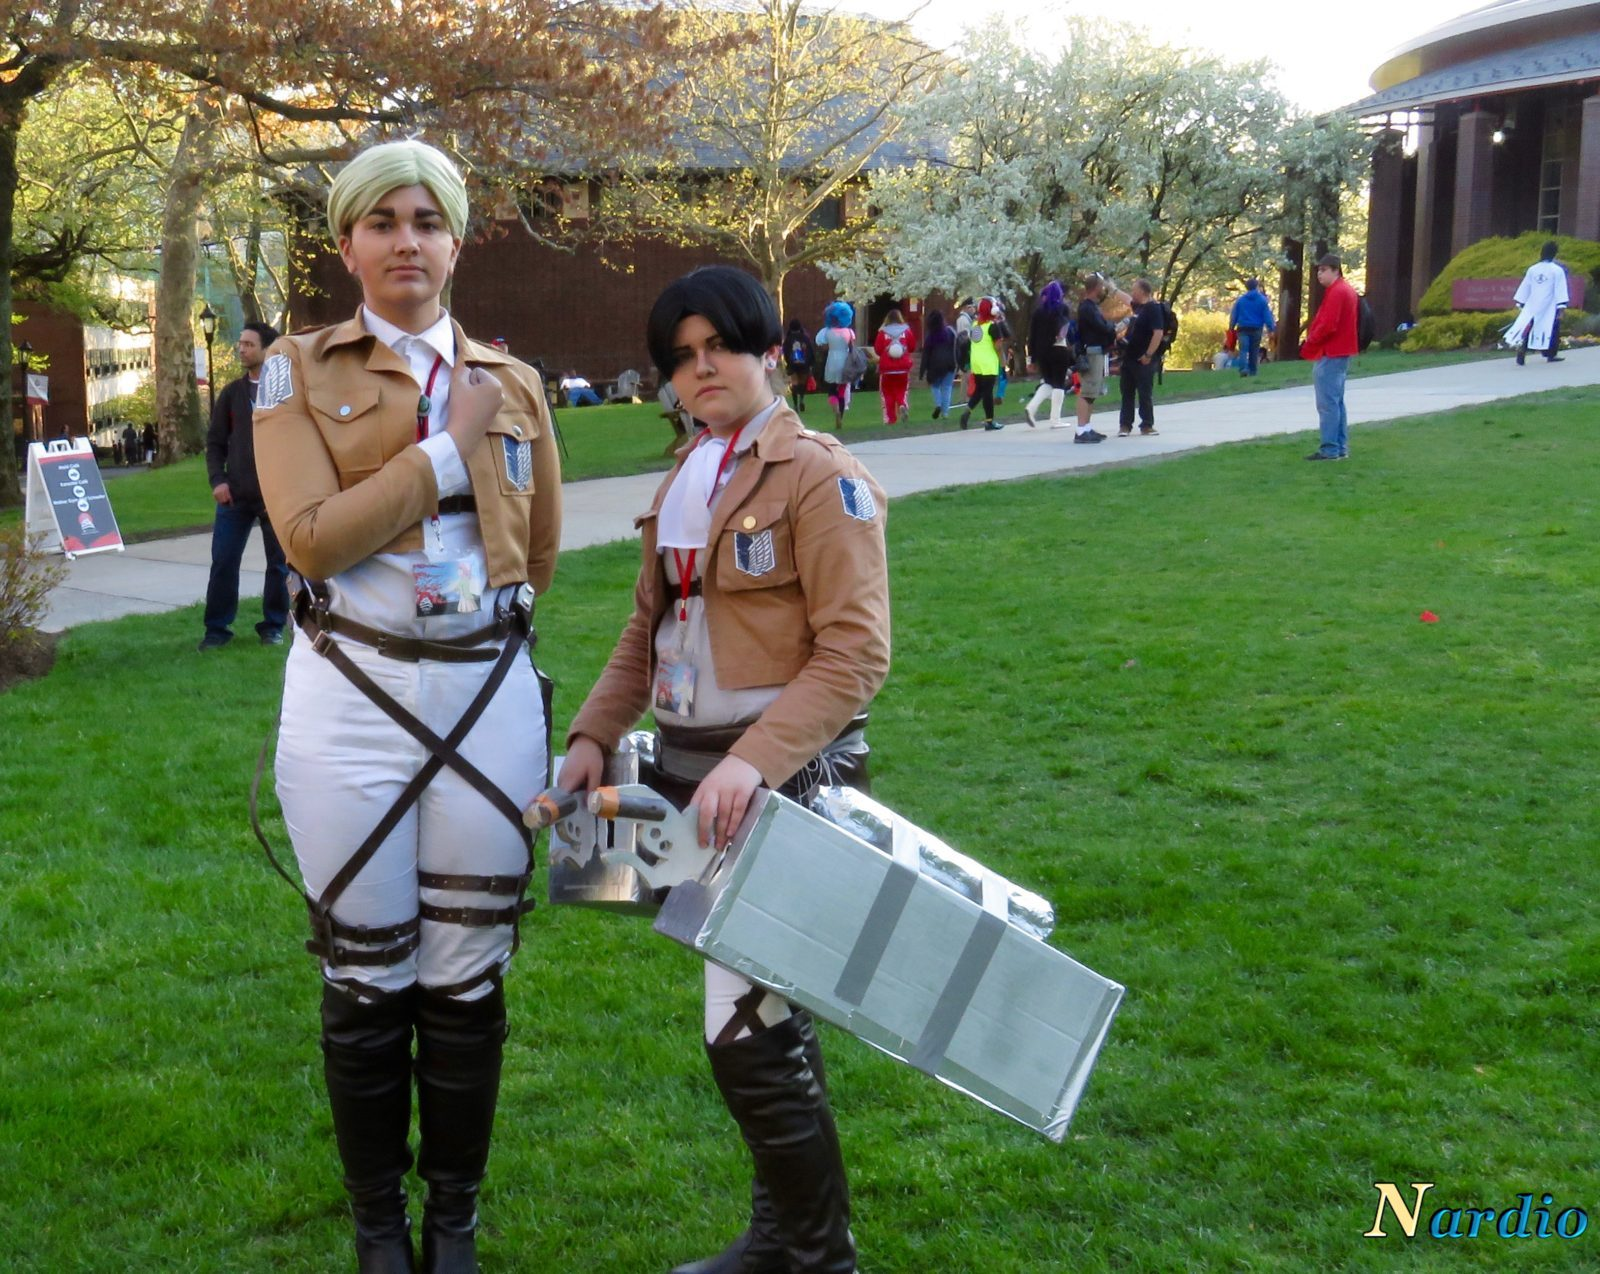 attack-on-titan-cosplay-at-castle-point-anime-convention-002